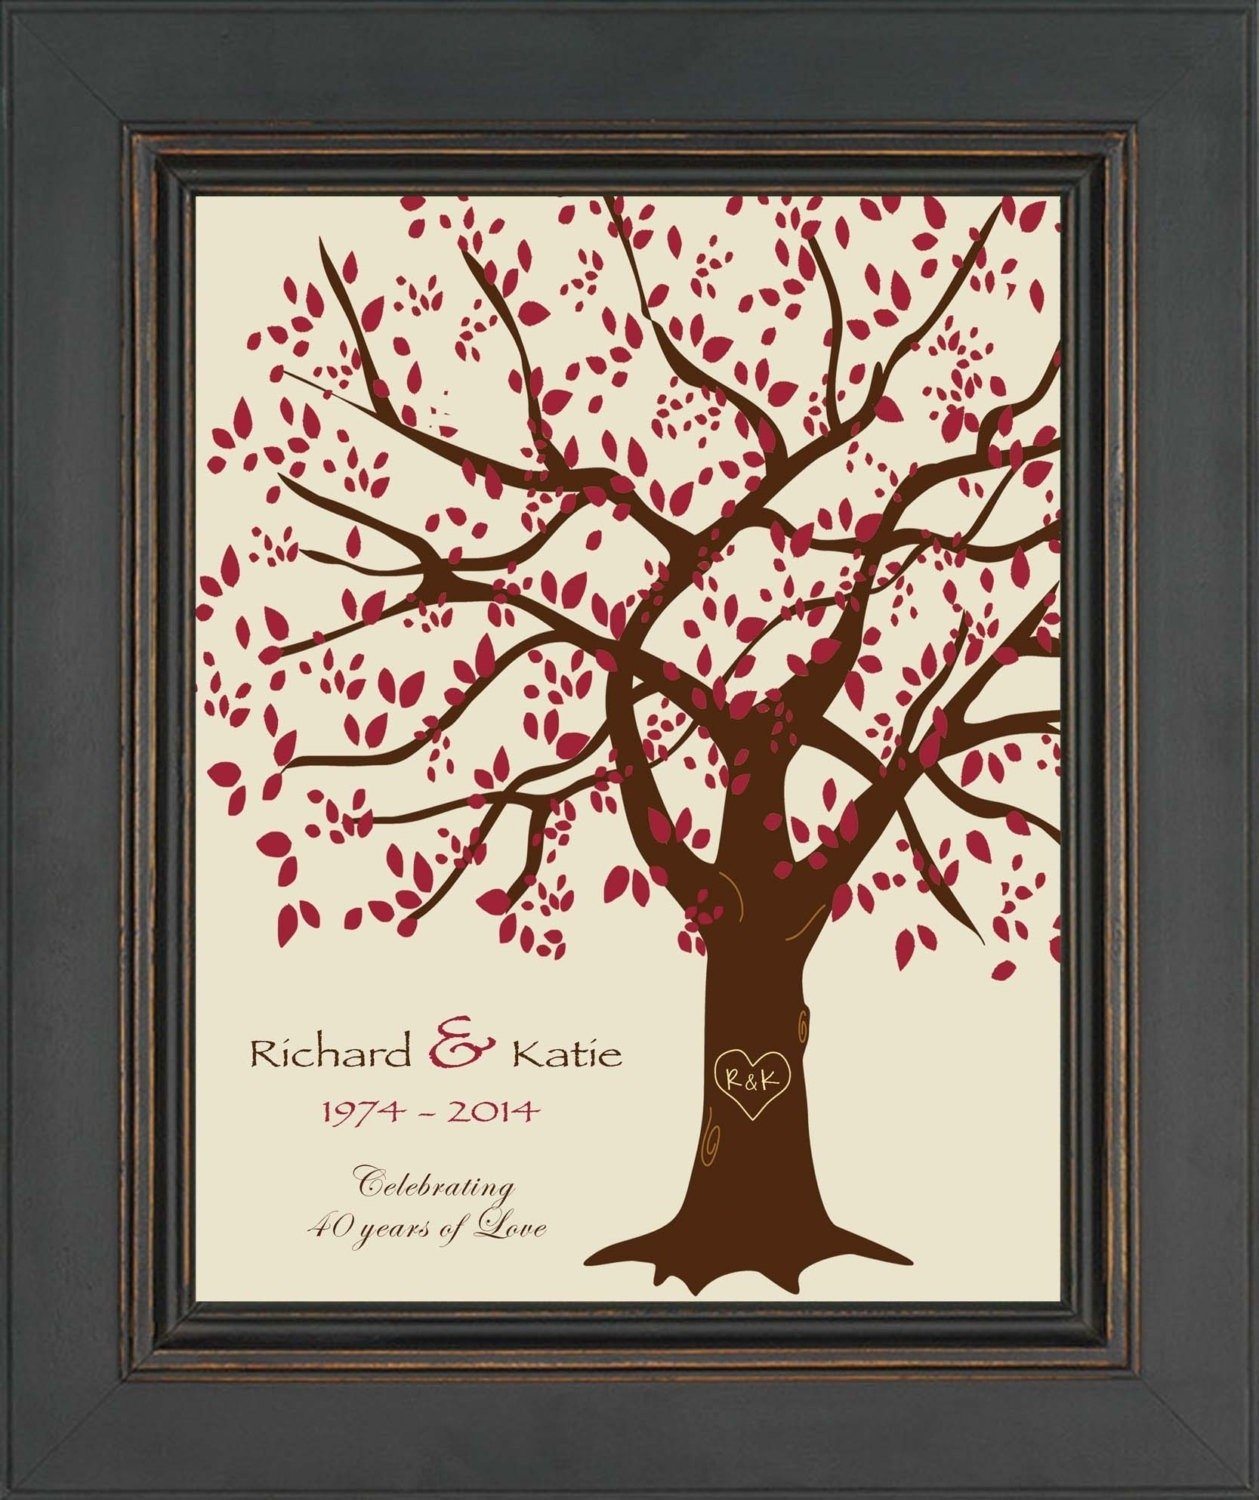 10 Unique Gift Ideas For 40Th Wedding Anniversary 40th wedding anniversary gift ideas for couples unique 40th 1 2020